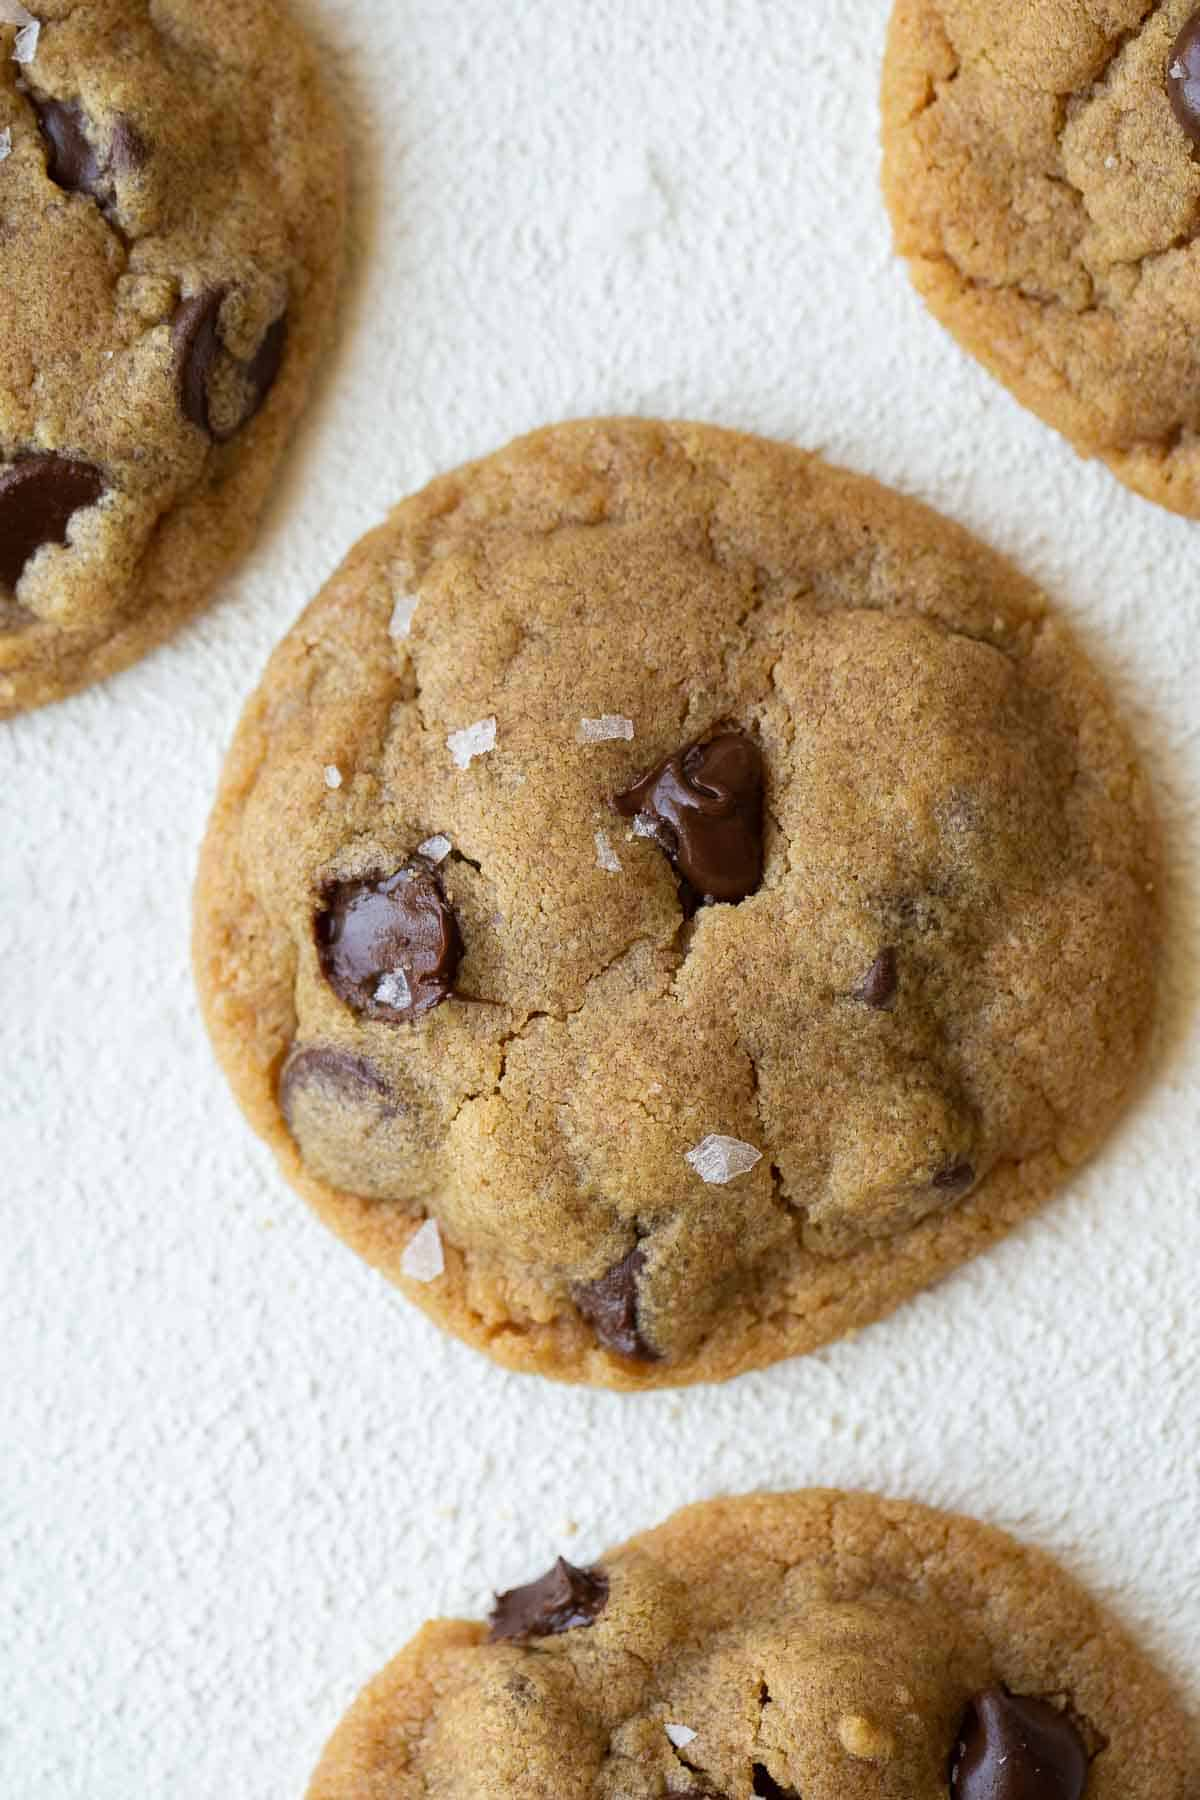 final shot of one cookie on white background